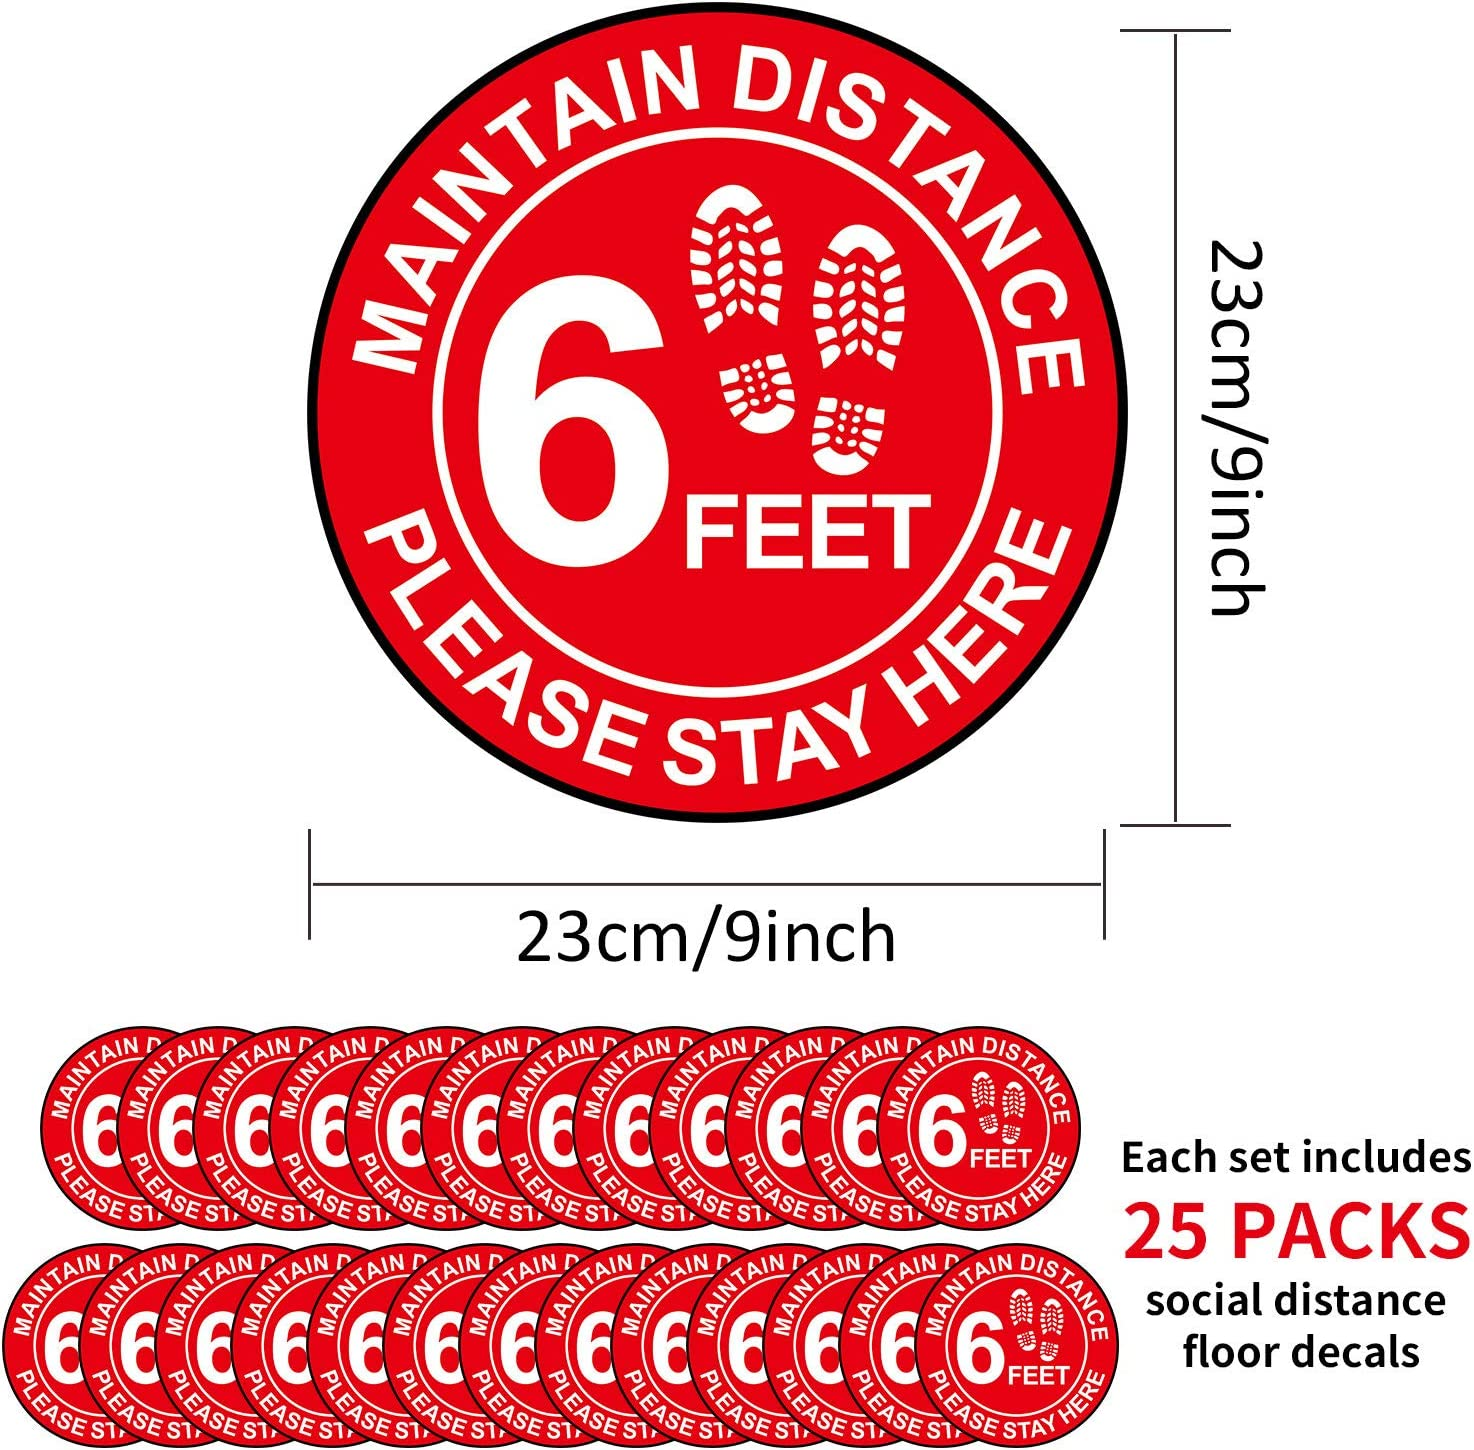 Supermarket Business Safety Floor Sign Marker/Stay Here Label for School Red, White 25 Packs 6 Feet Social Distancing Floor Decal Stickers Grocery Bank